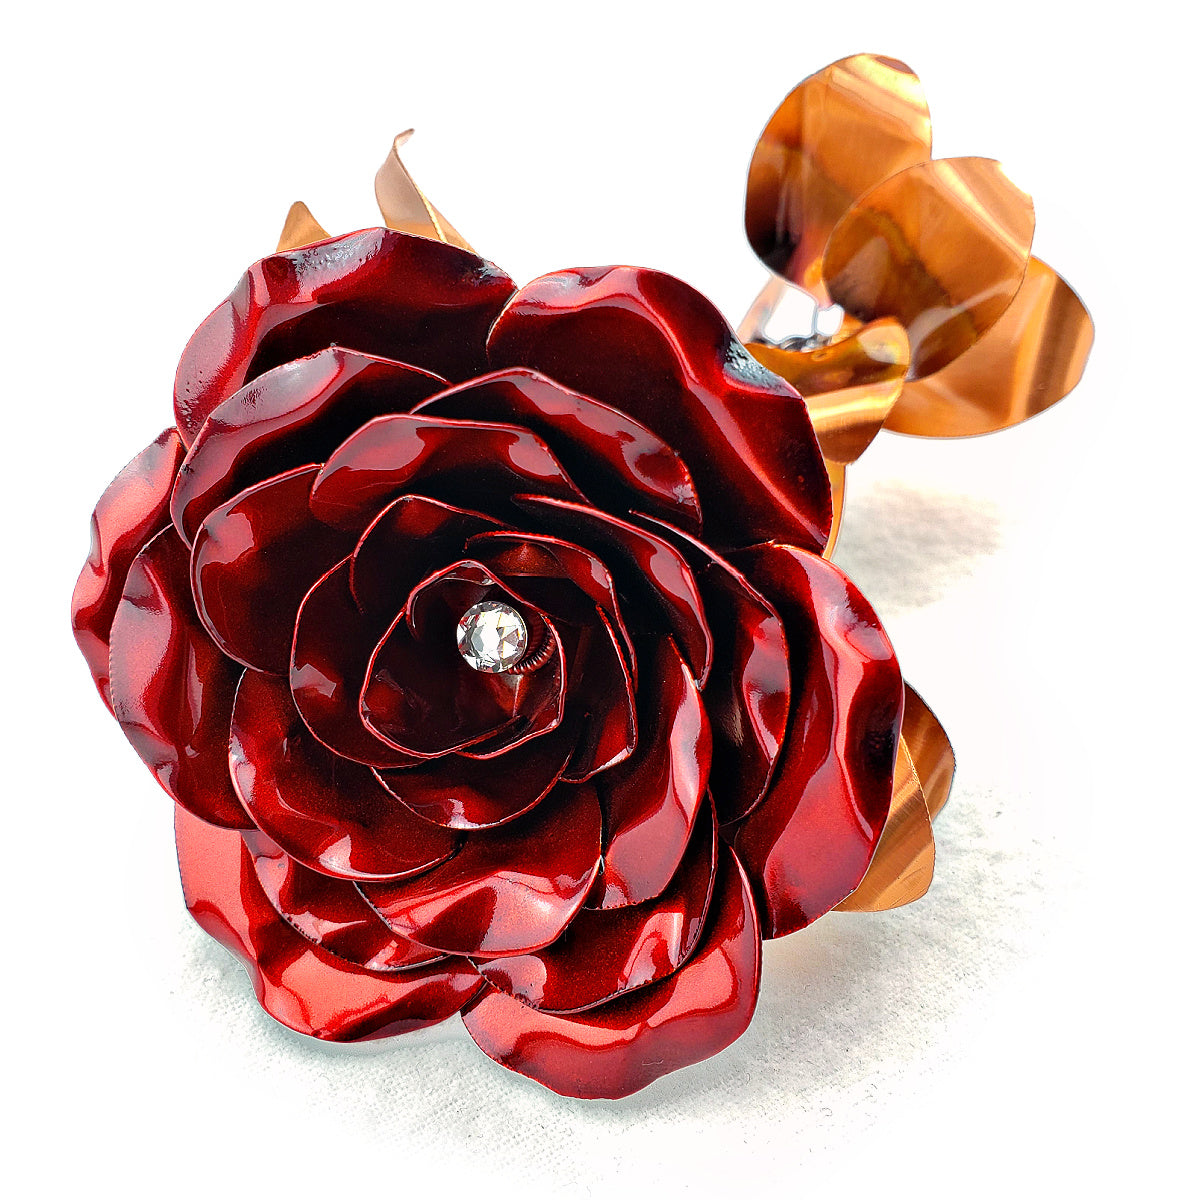 Birthstone Metal Rose - Gifts for birthdays, weddings, anniversary, valentines - Steel Rose Company